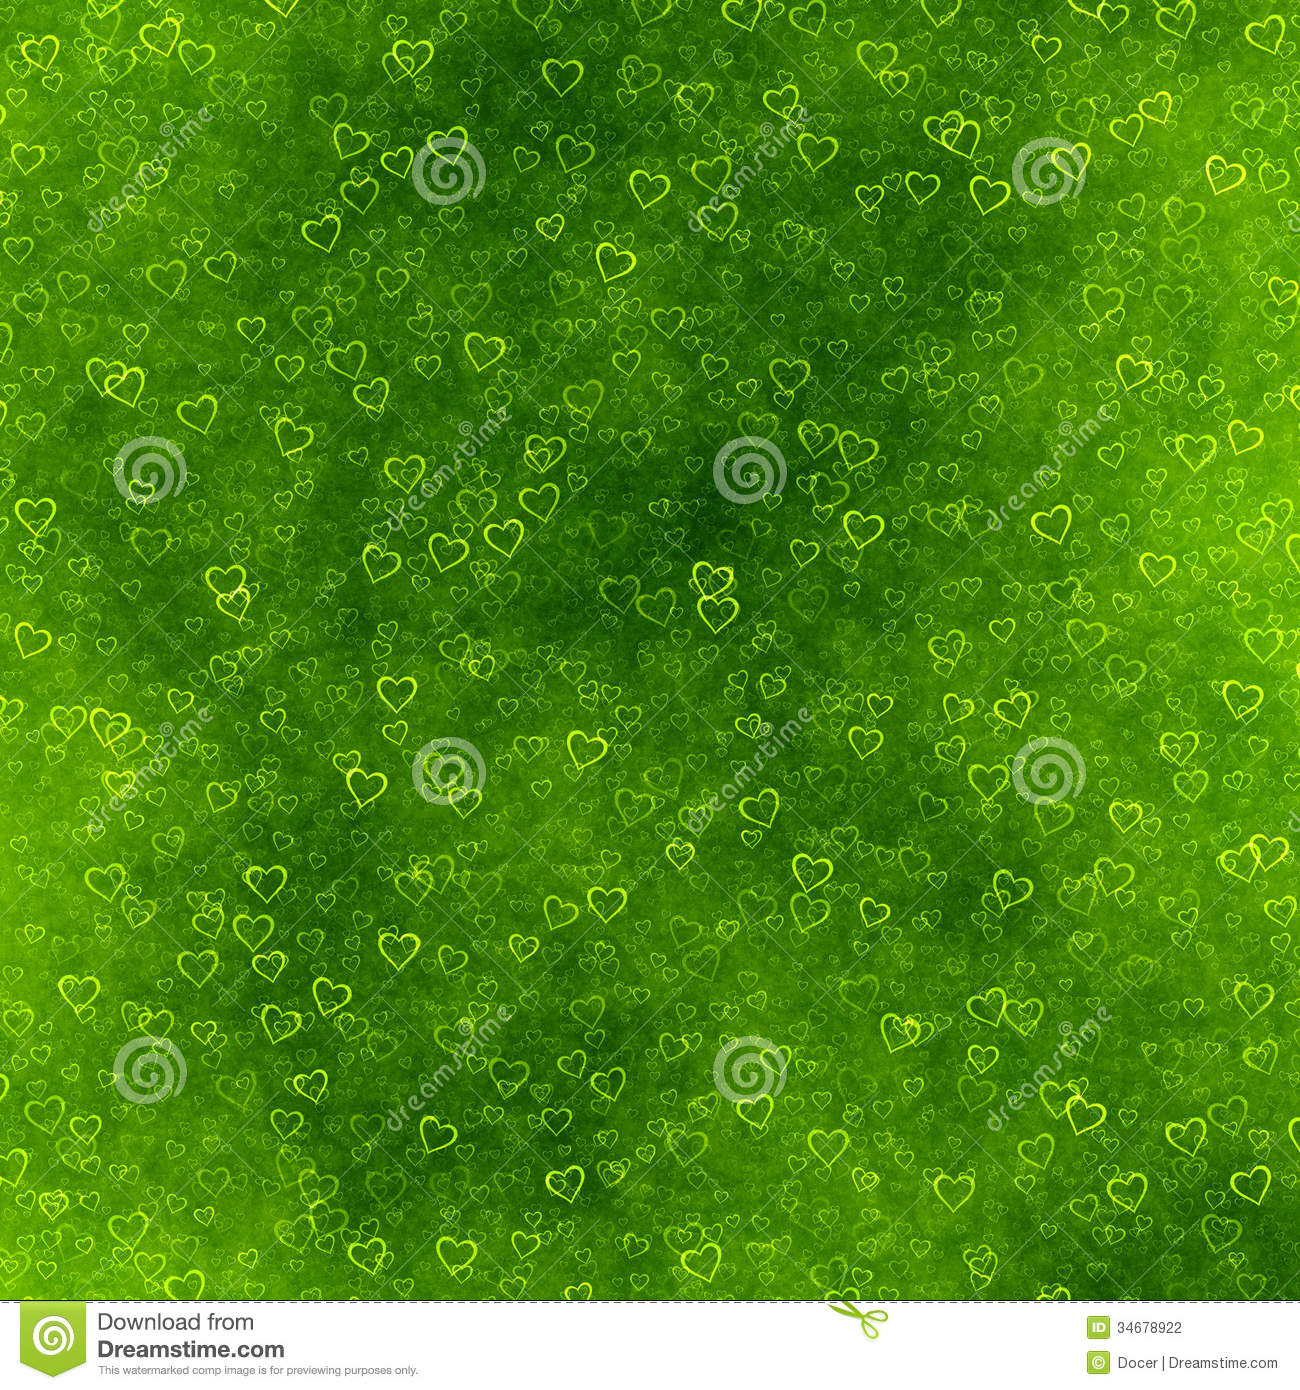 green hearts background - photo #20